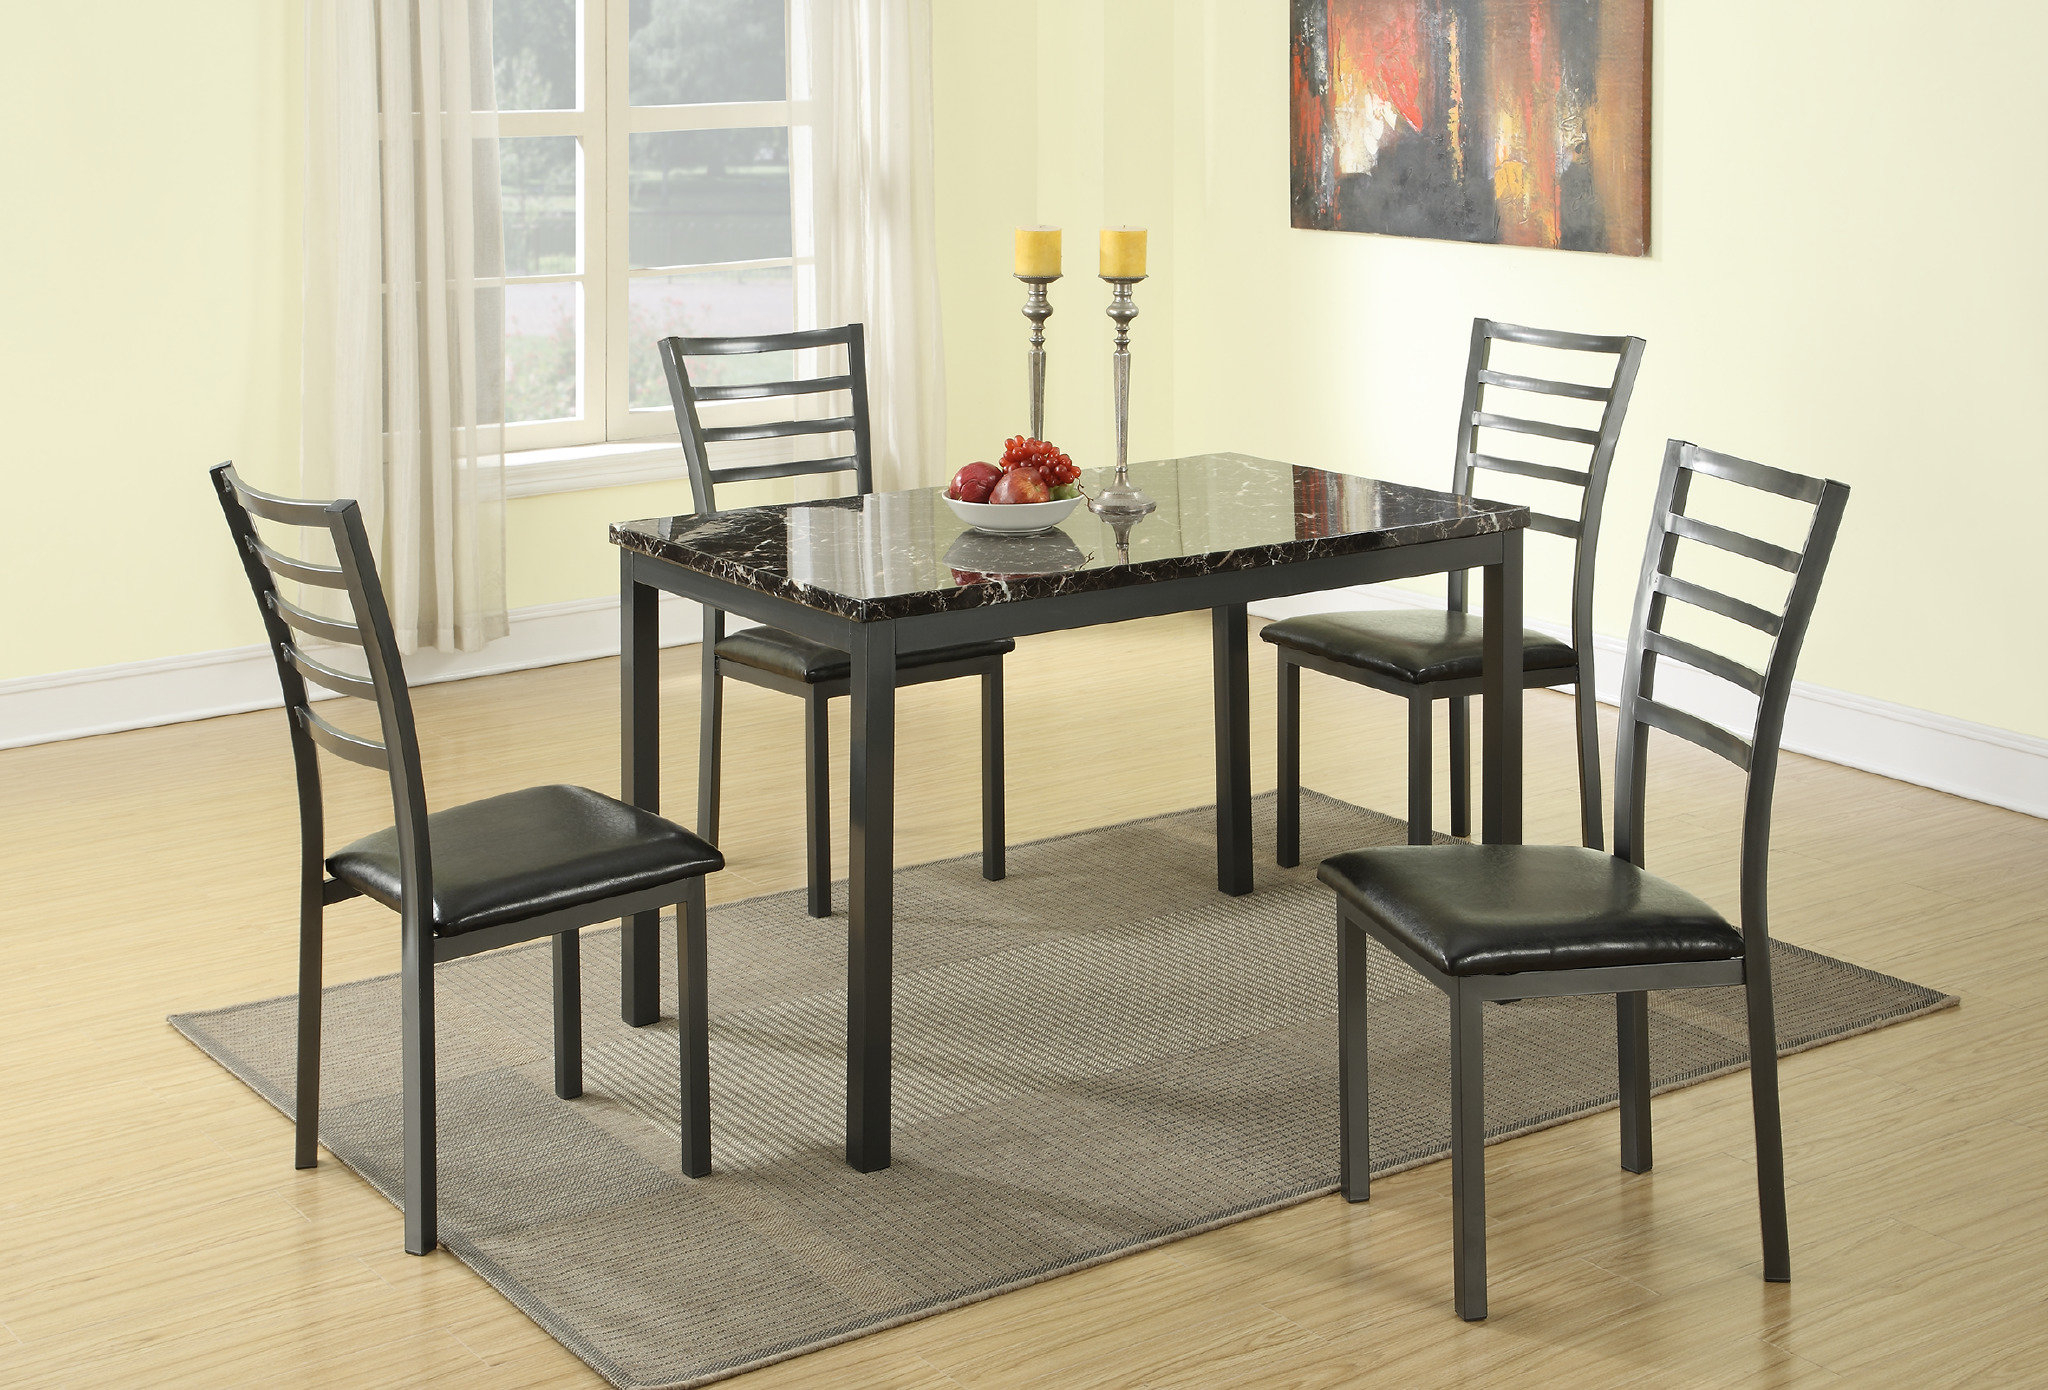 Most Popular Taulbee 5 Piece Dining Sets With Regard To Caenas 5 Piece Dining Set (View 13 of 20)